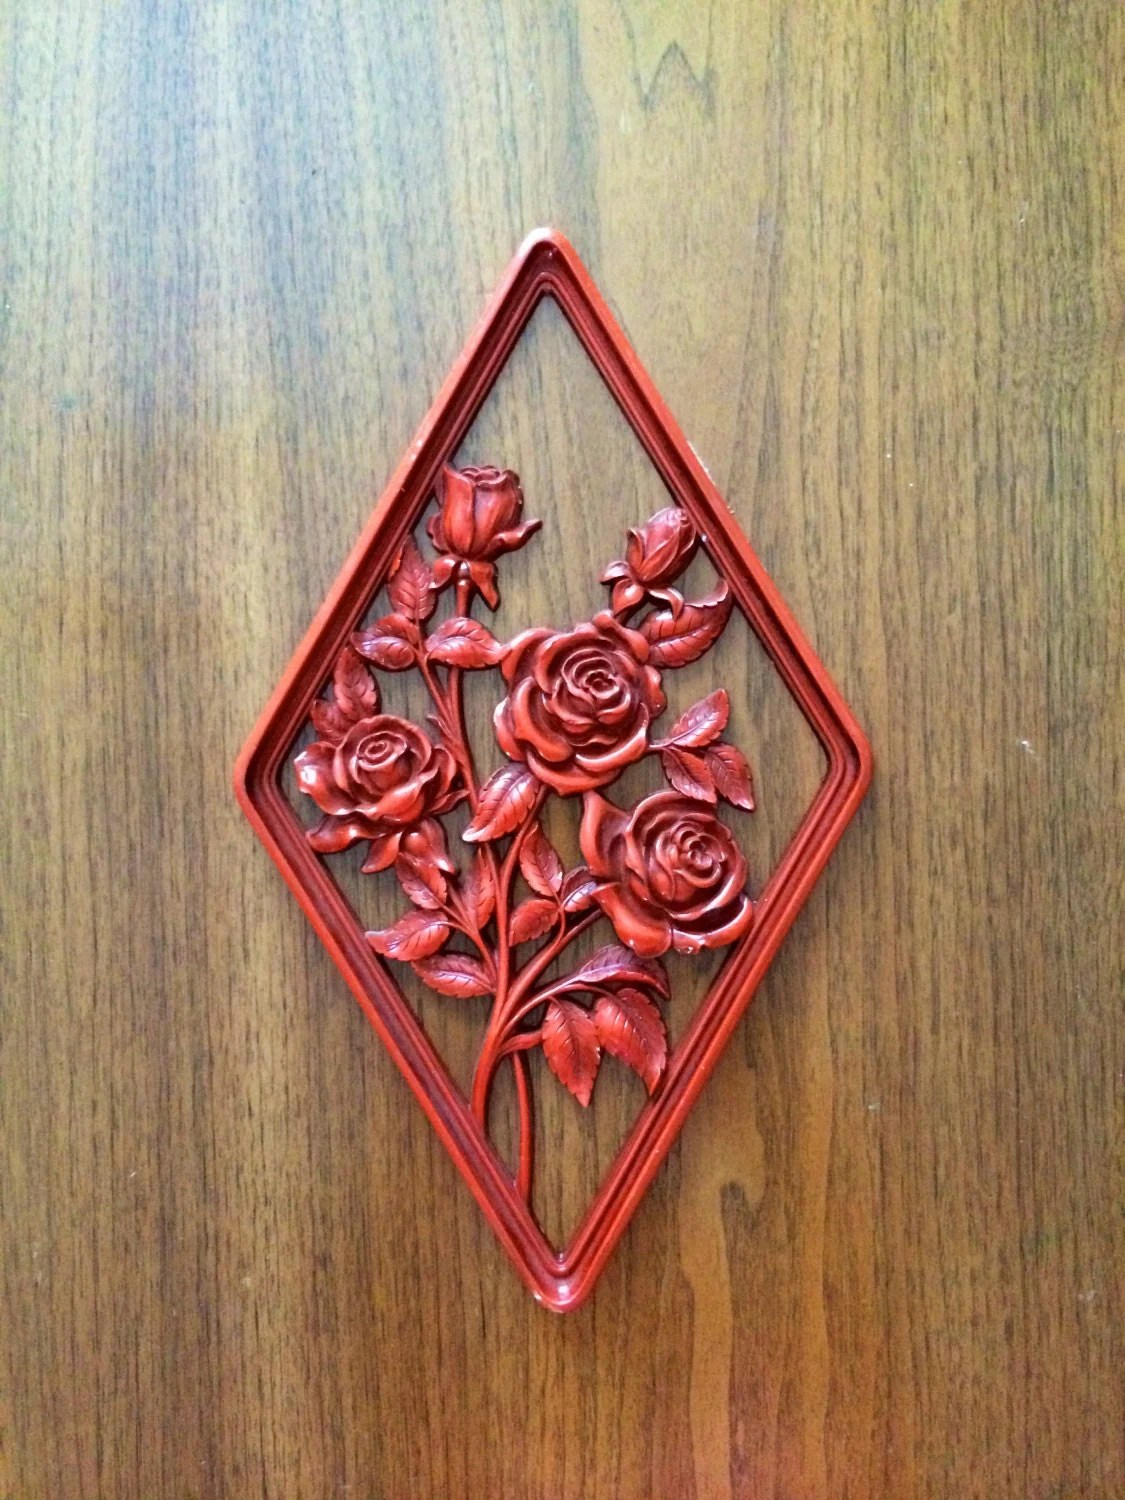 Best Vintage Wall Decor Orange Syroco Diamond Shaped Wall Hanging This Month